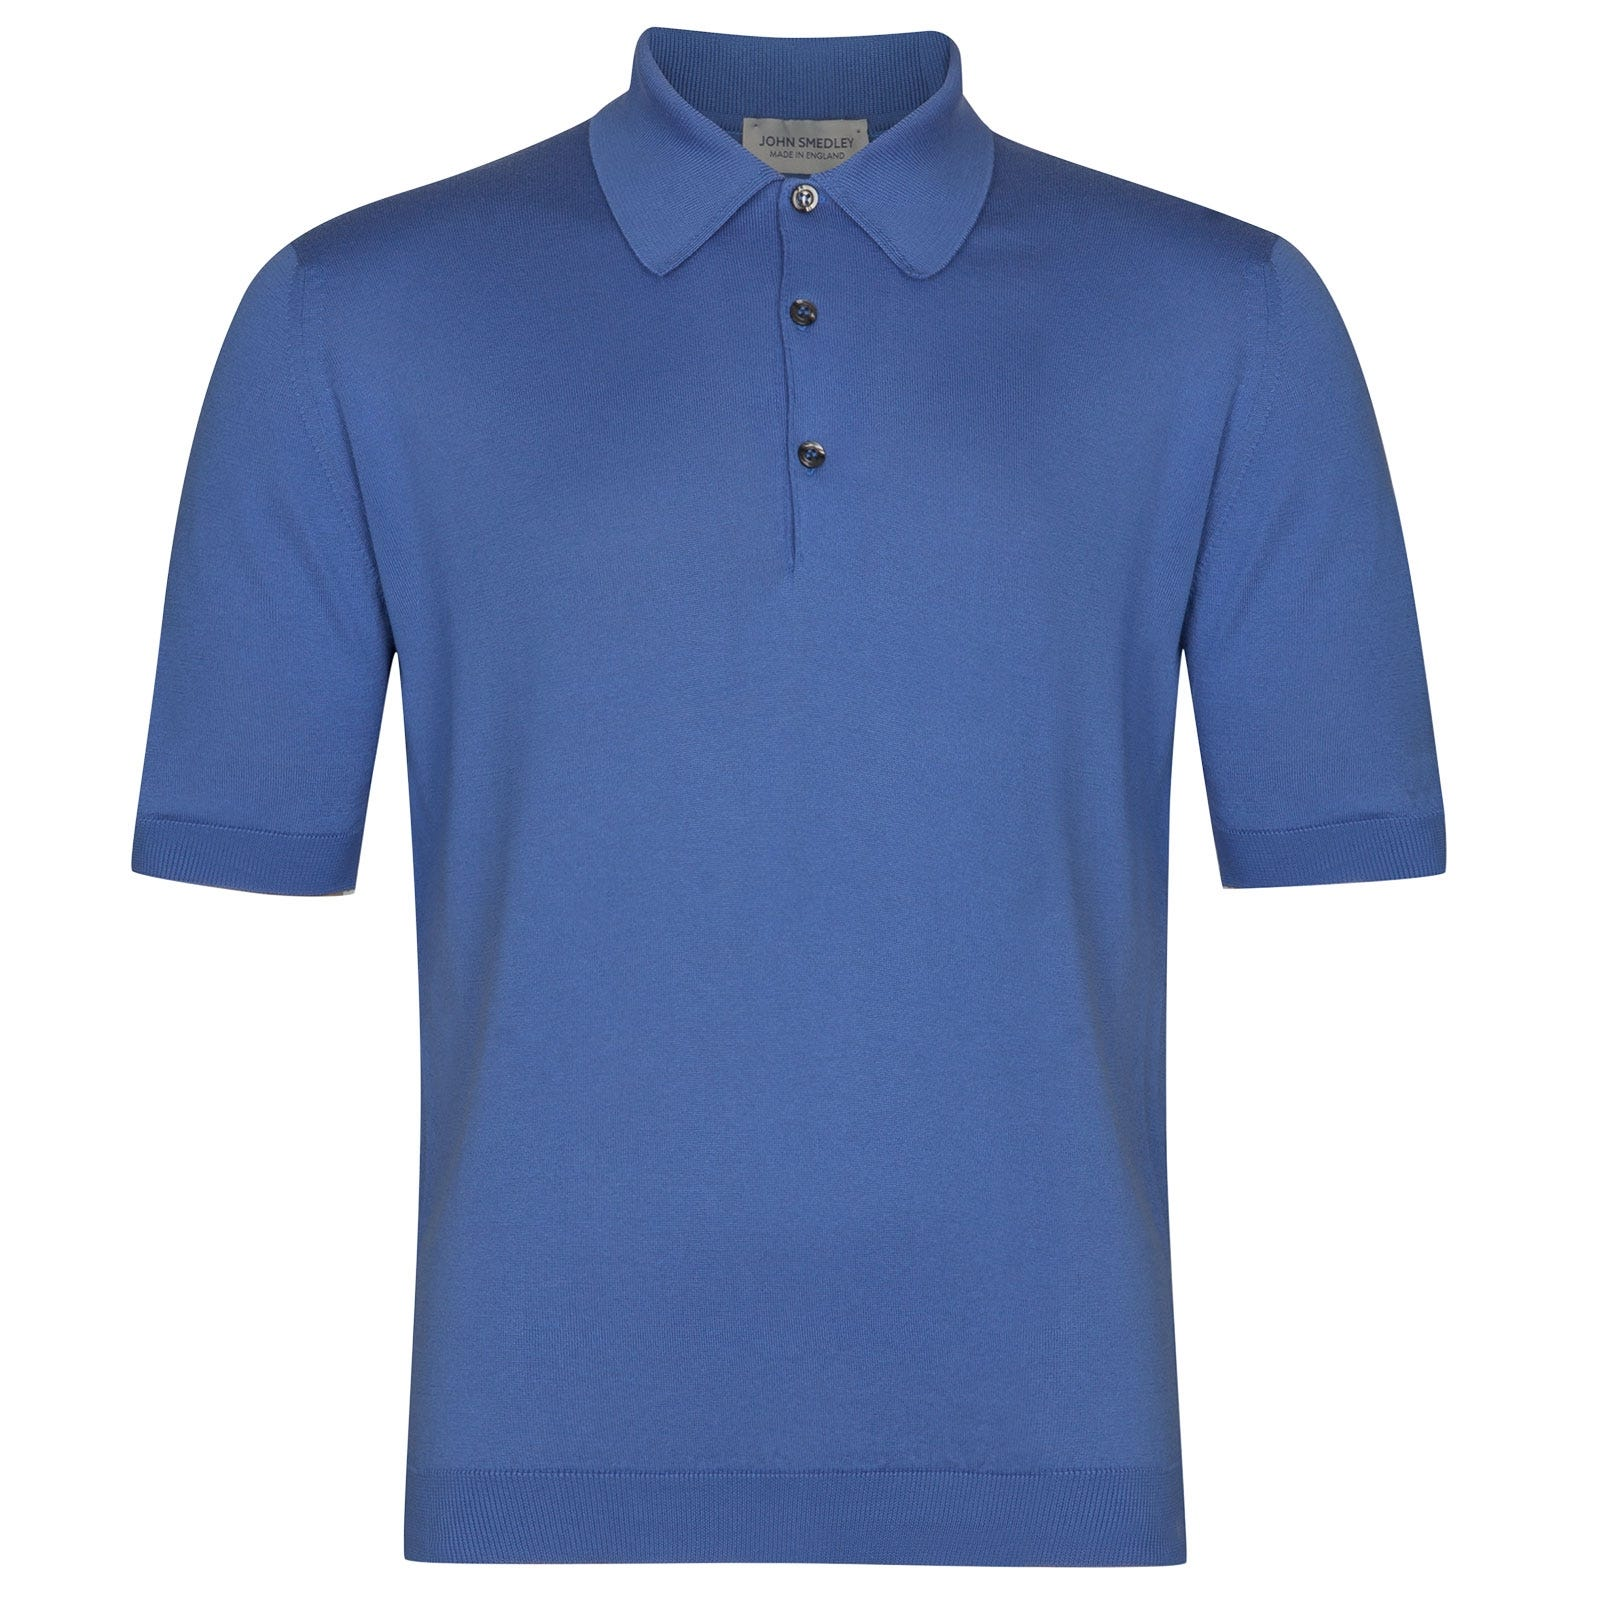 John Smedley Isis Sea Island Cotton Shirt in Chambray Blue-XS